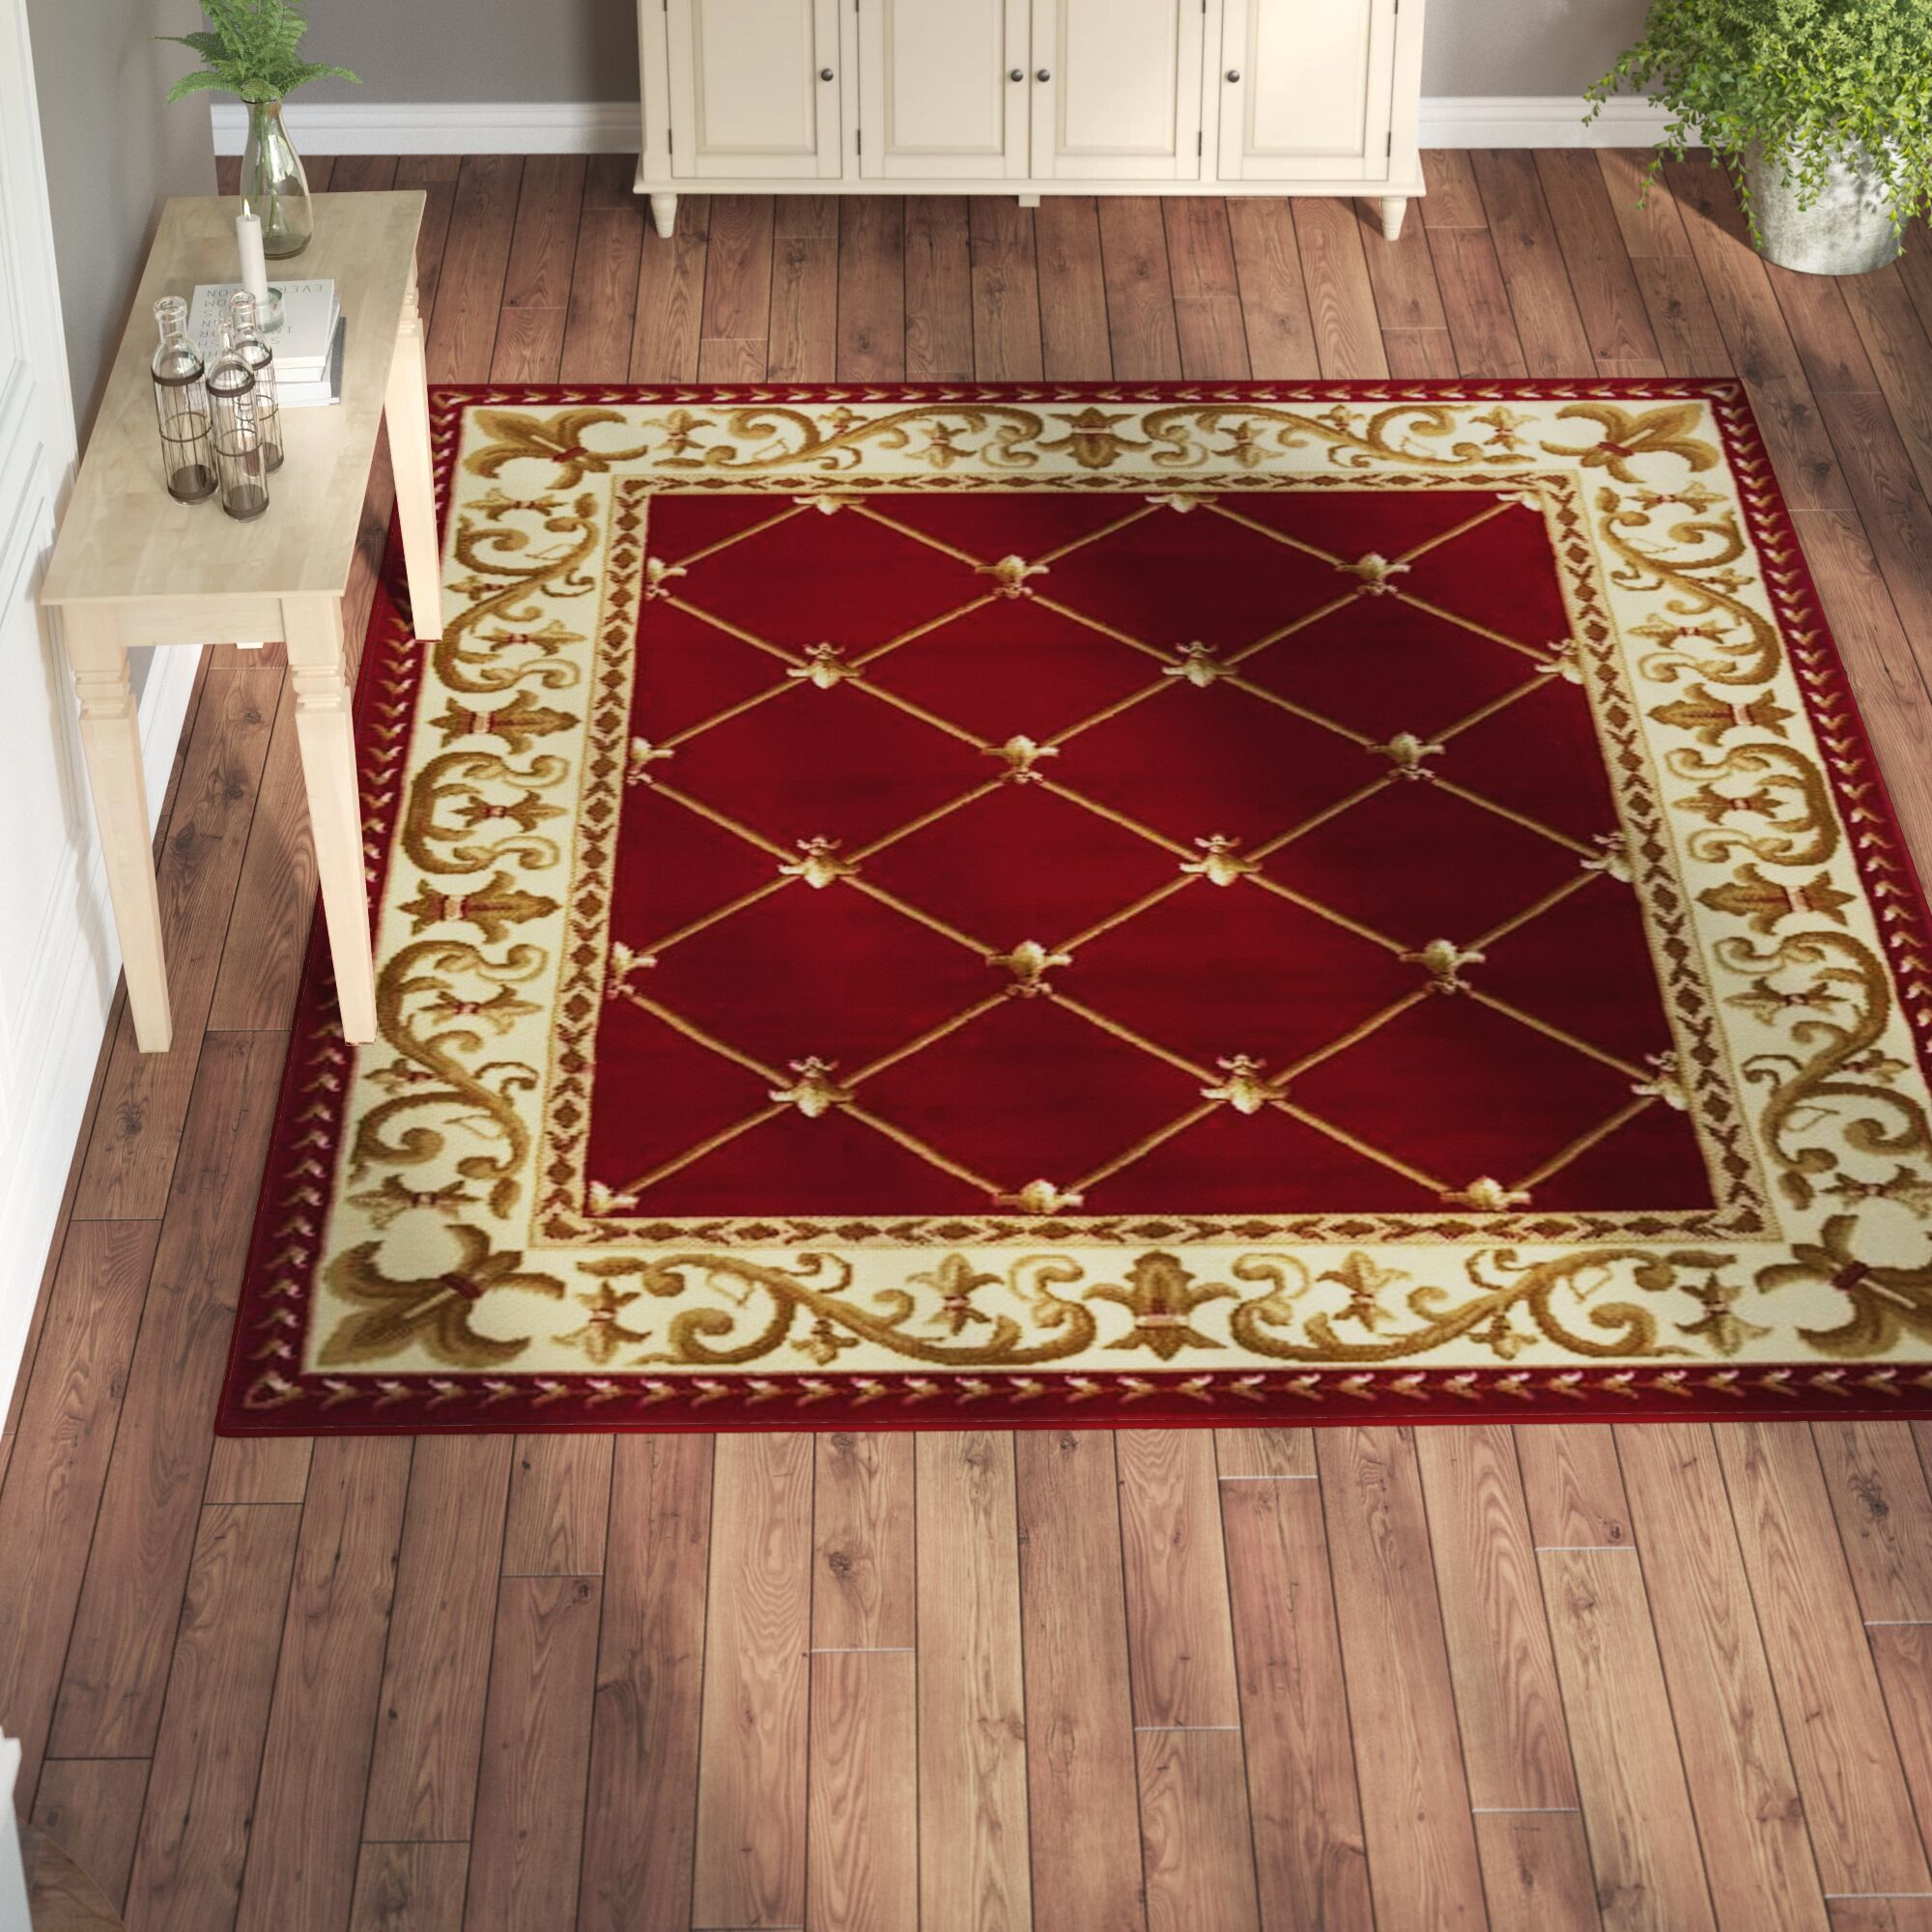 Jasonville Oriental Red/Beige Area Rug Rug Size: Rectangle 8' x 10'